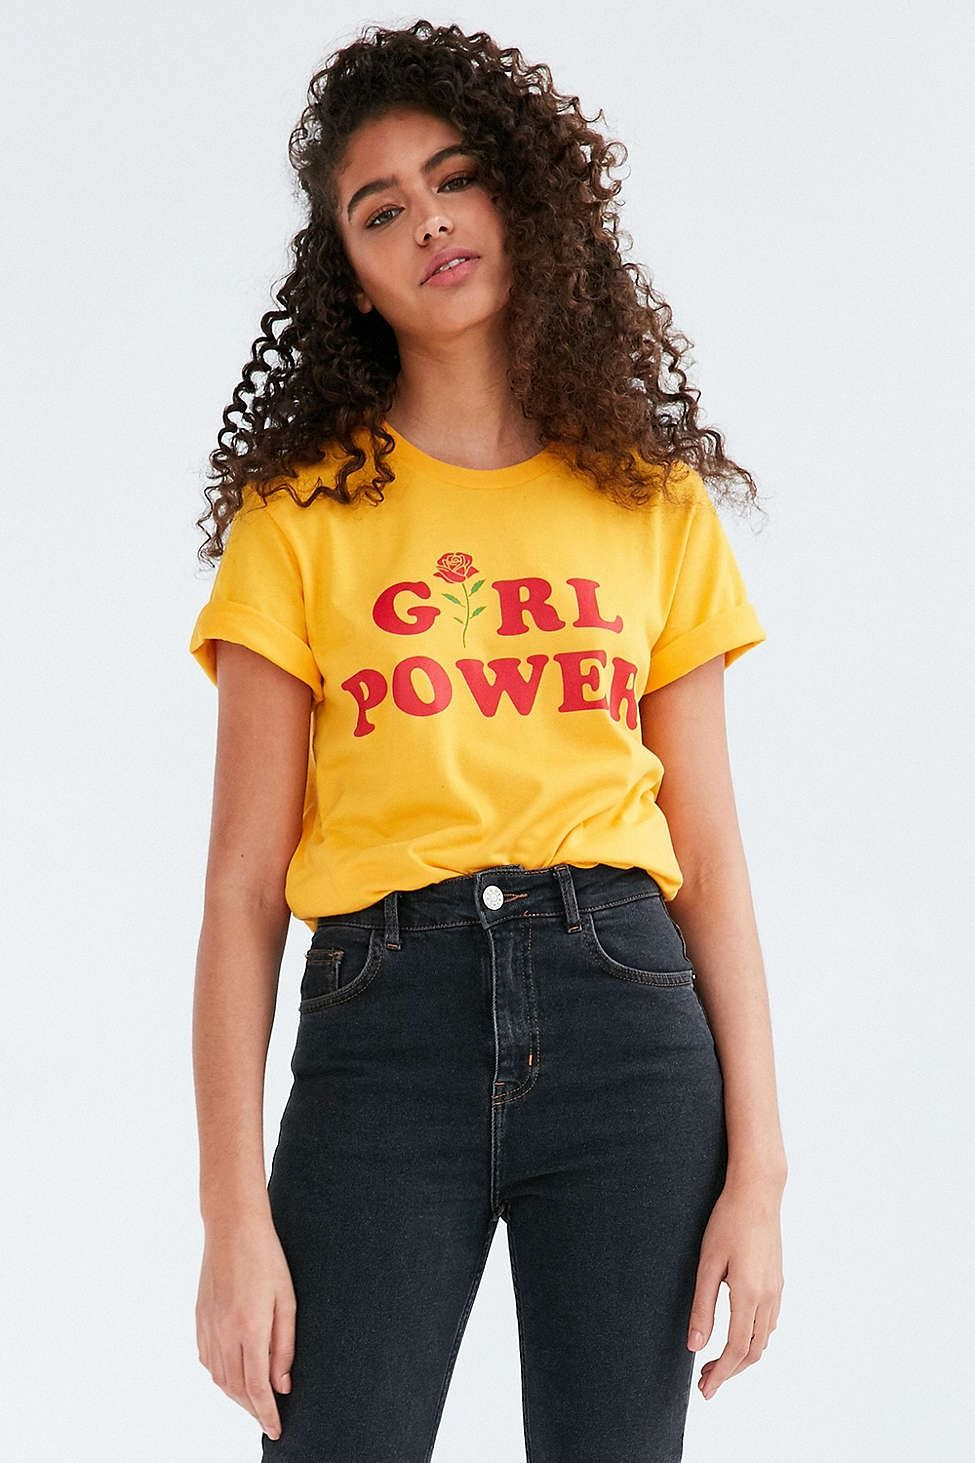 f05e20bad The Style Club Girl Power Tee - Urban Outfitters | New Arrivals ...